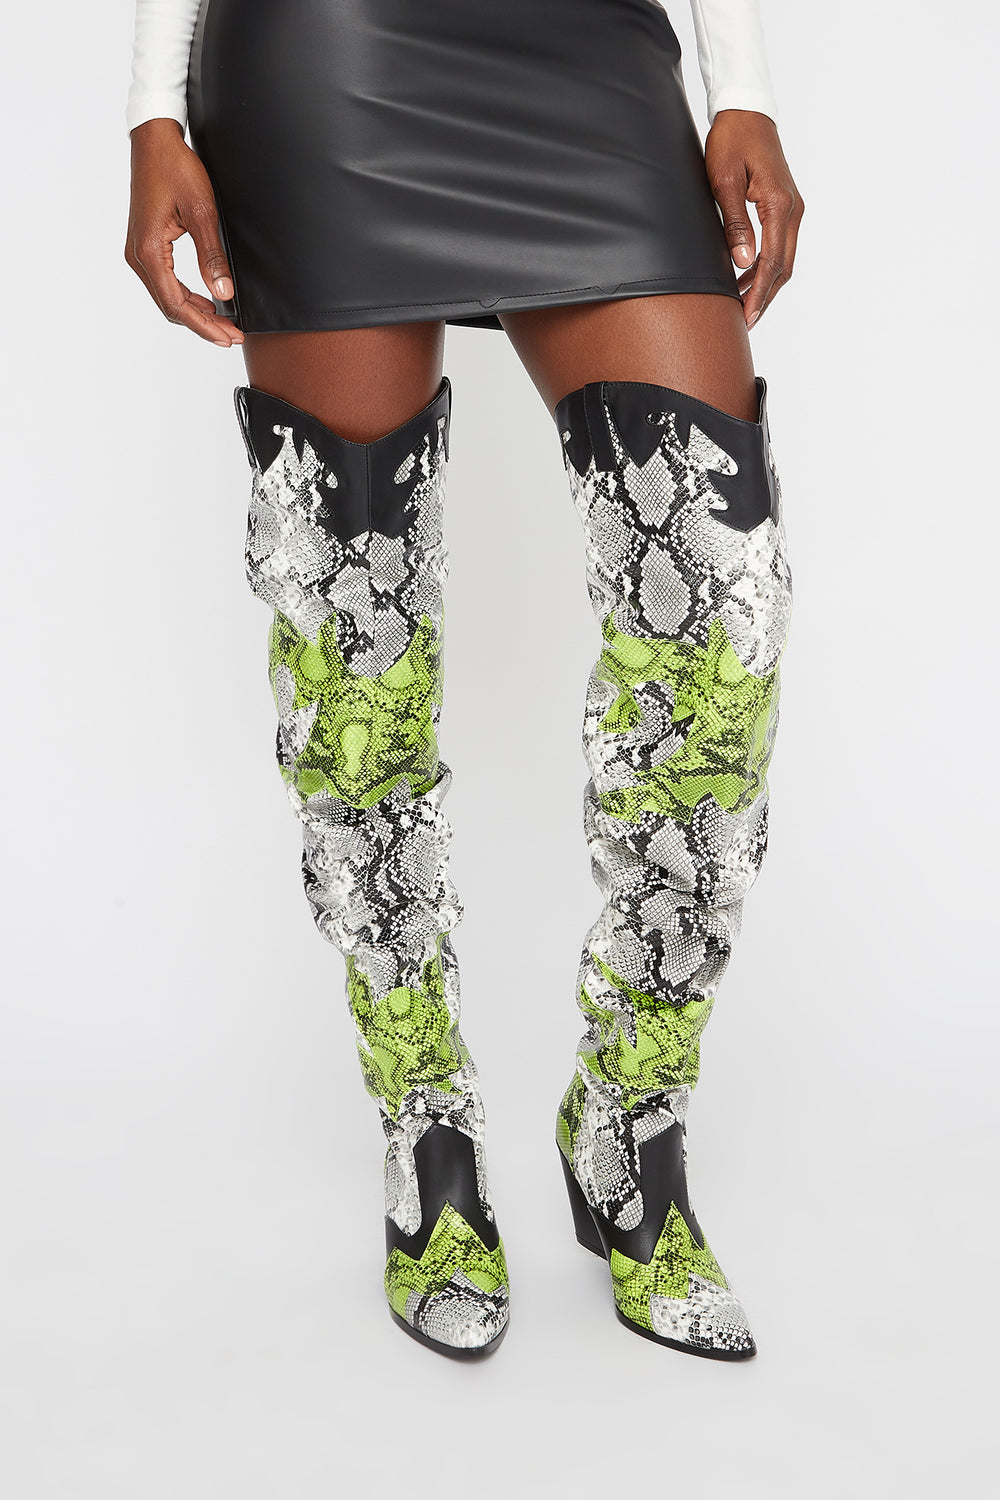 Cowboy Snake Ruched Thigh High Boot Black